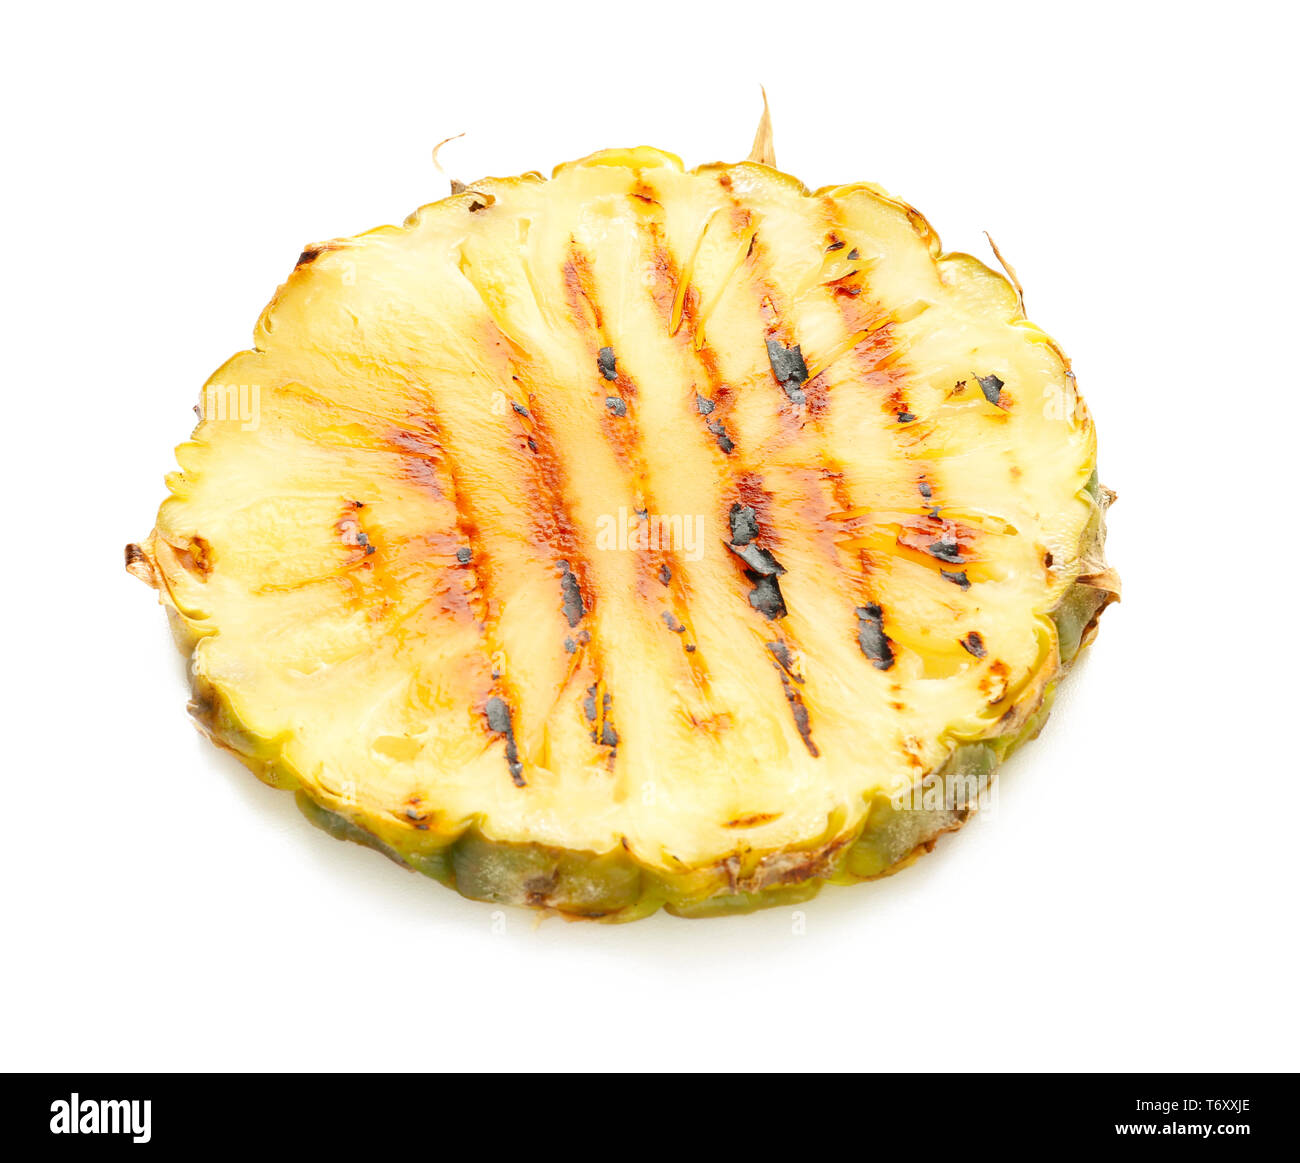 Grilled pineapple slice on white background - Stock Image